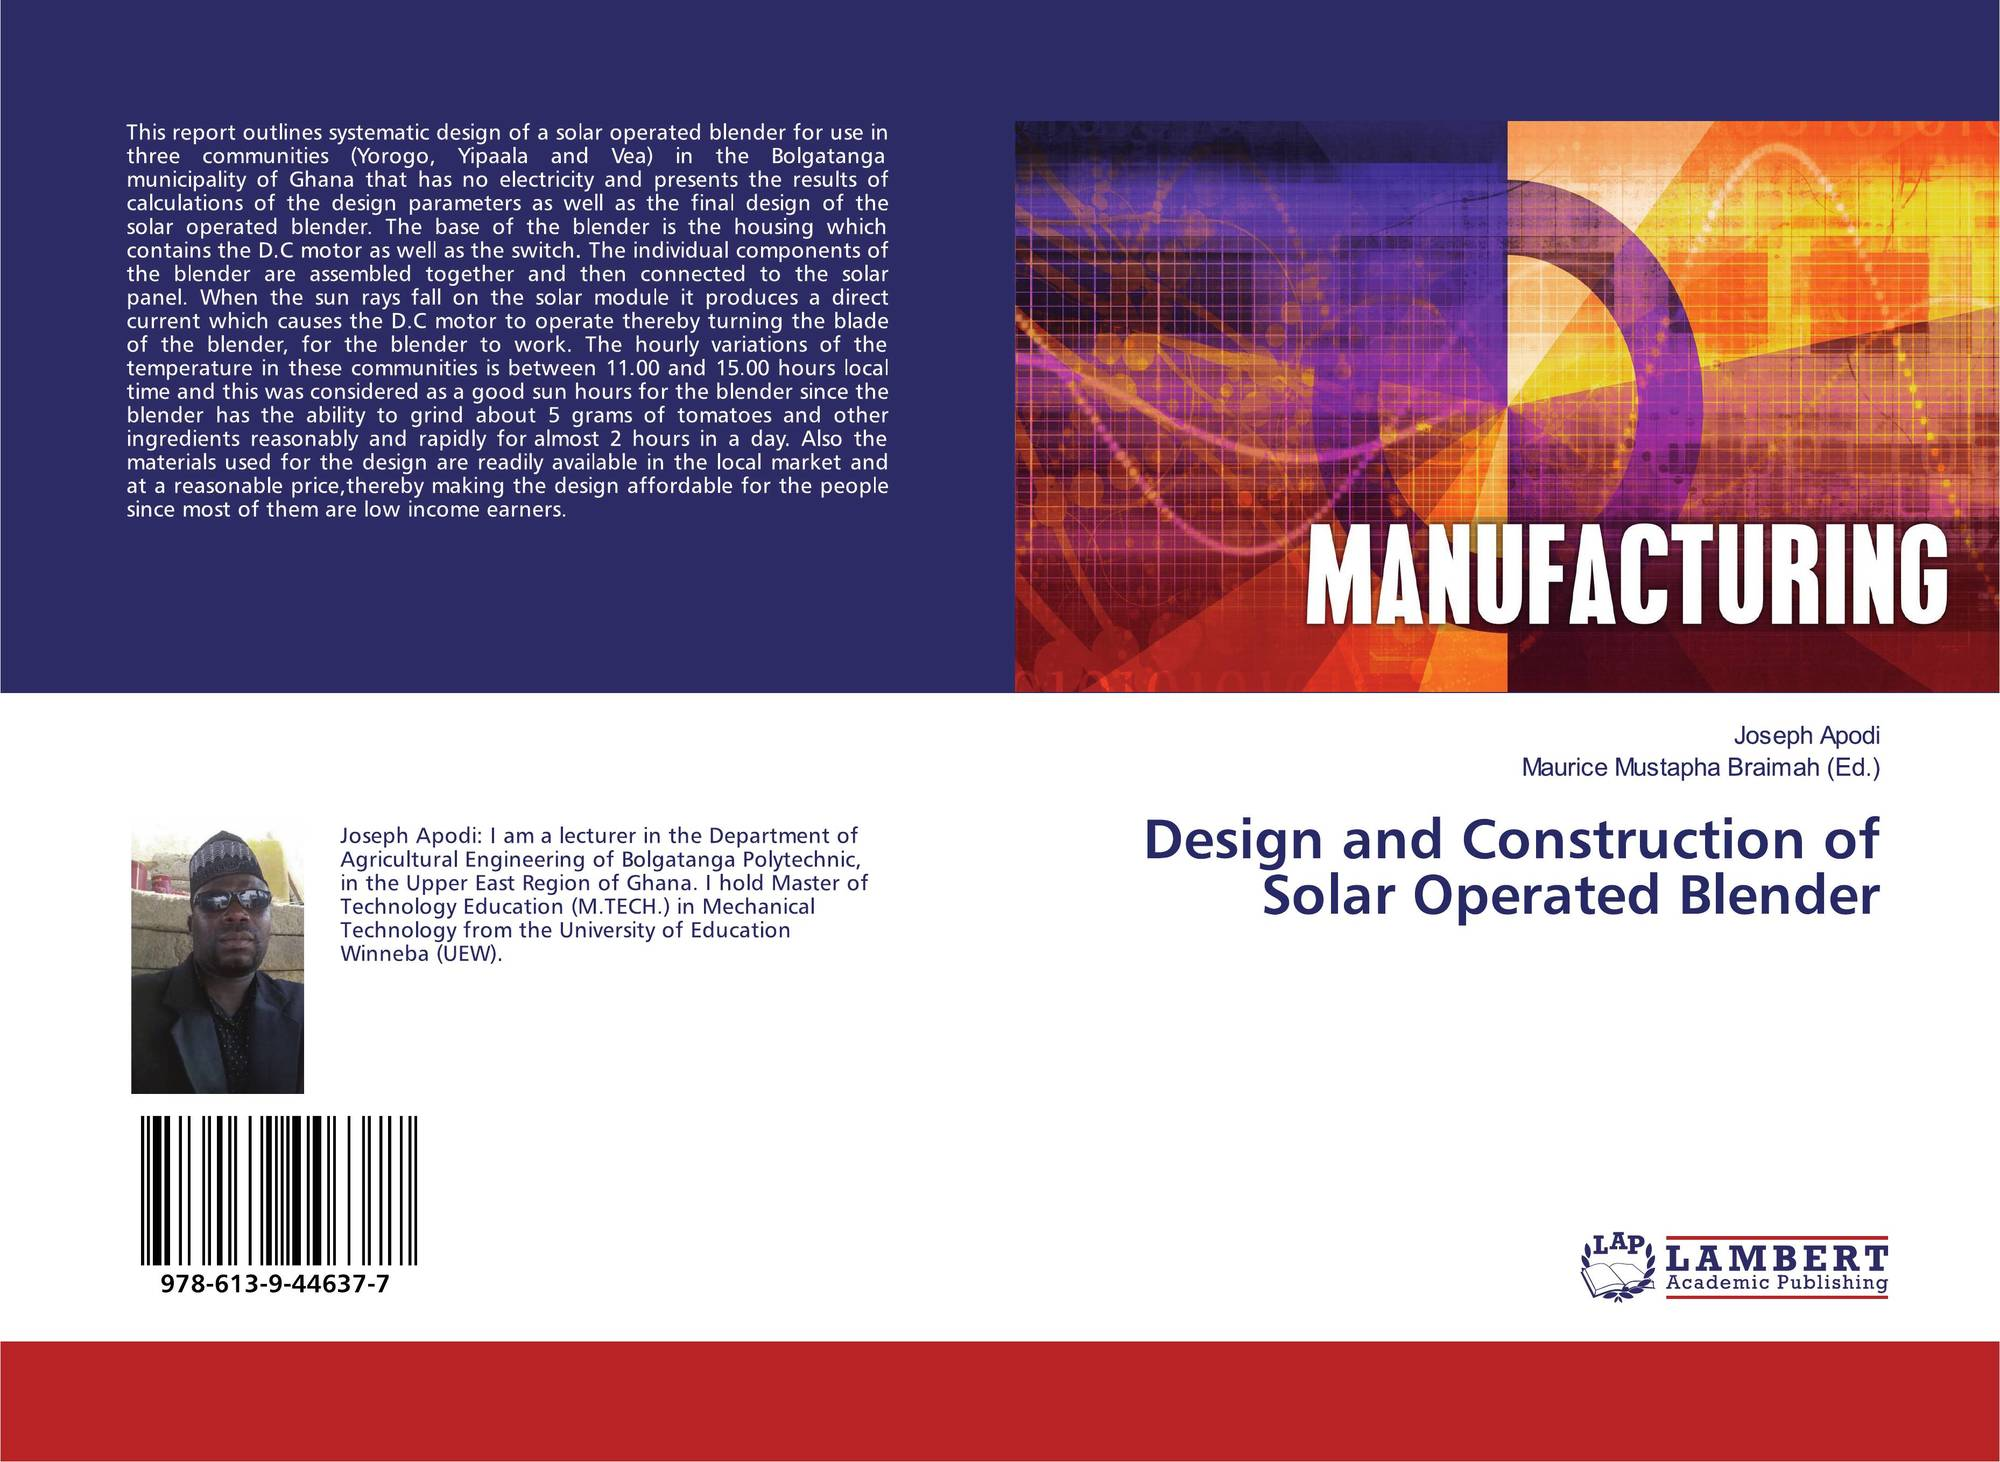 Design and Construction of Solar Operated Blender, 978-613-9